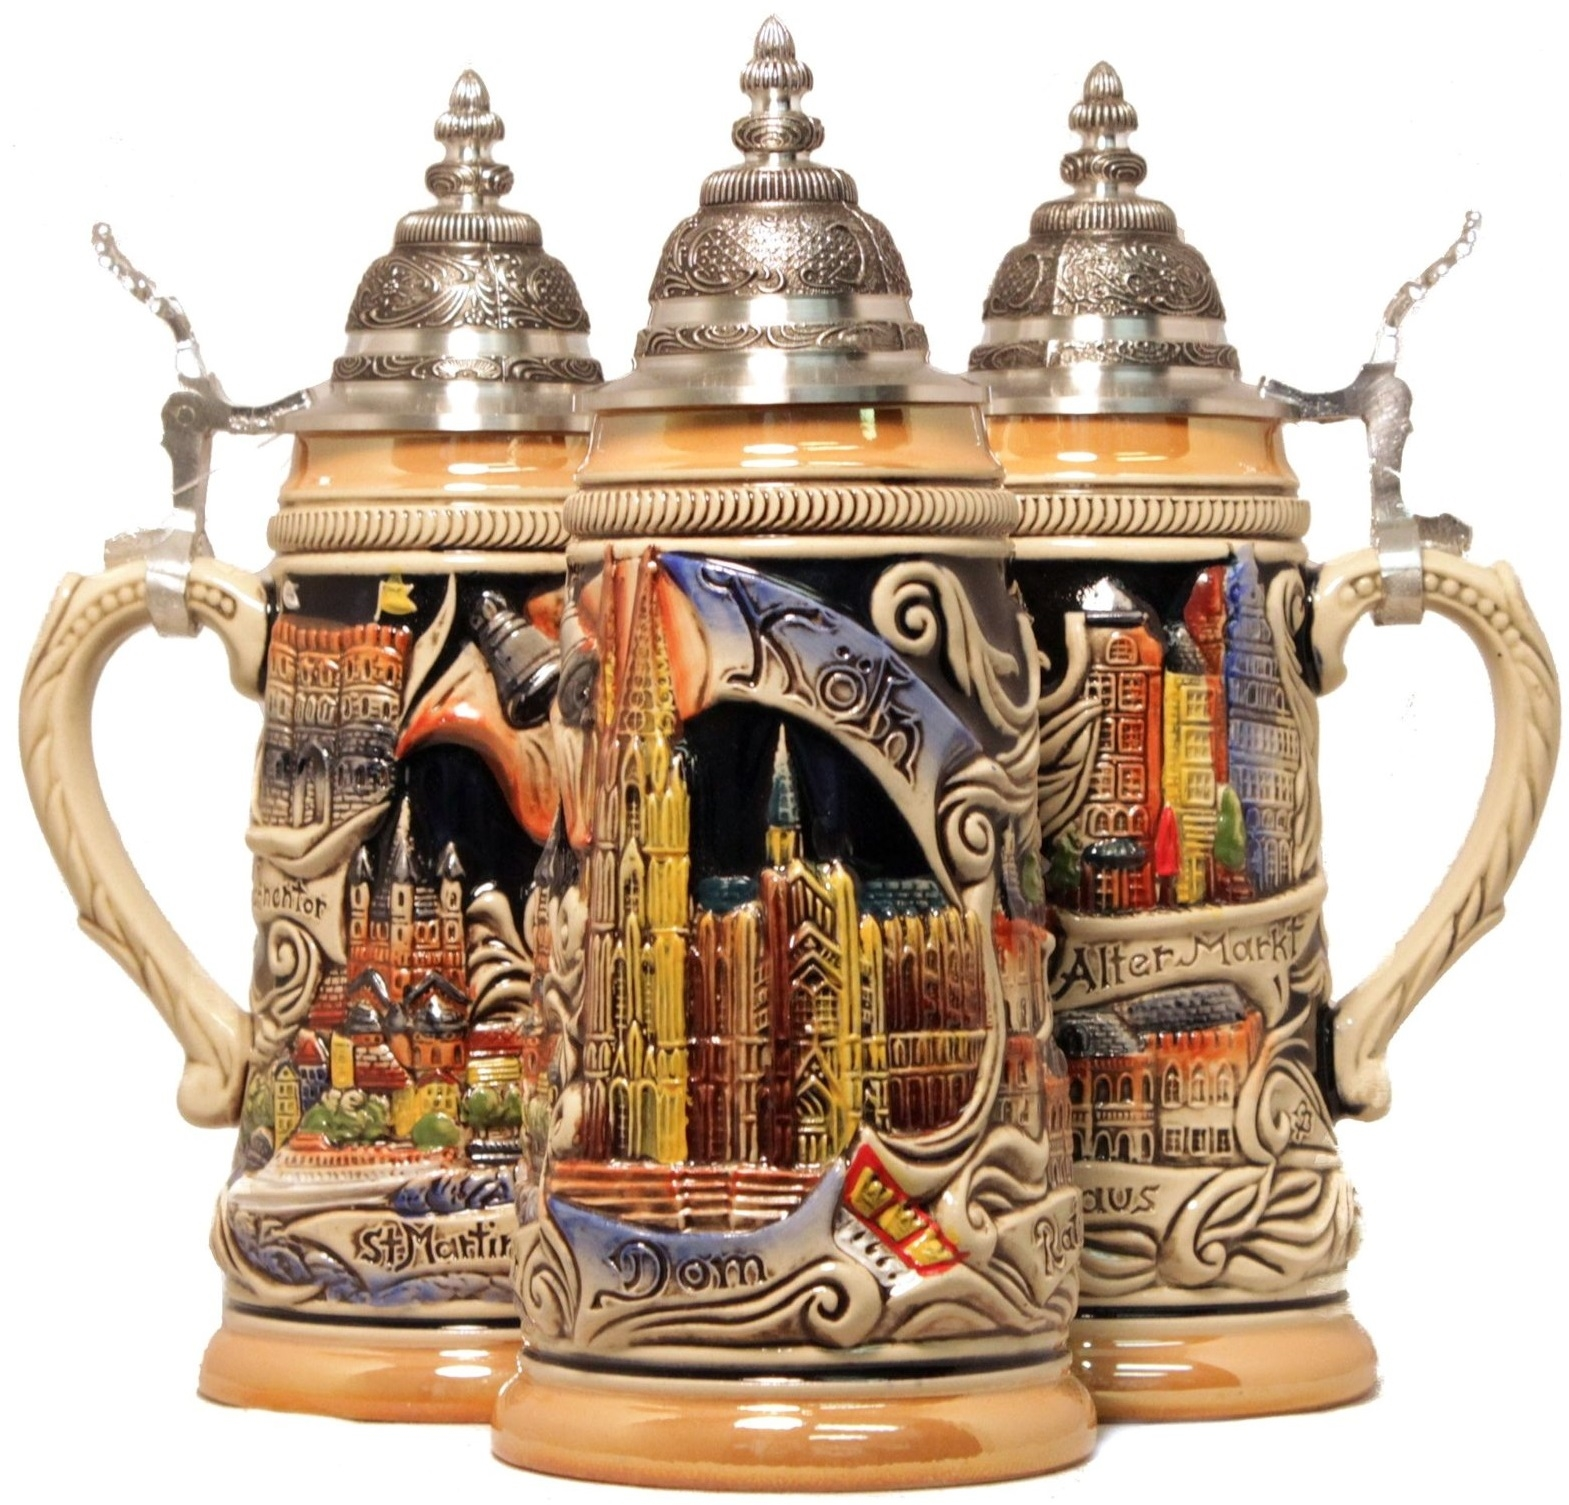 Koln Cologne Deutschland Germany Beer Stein